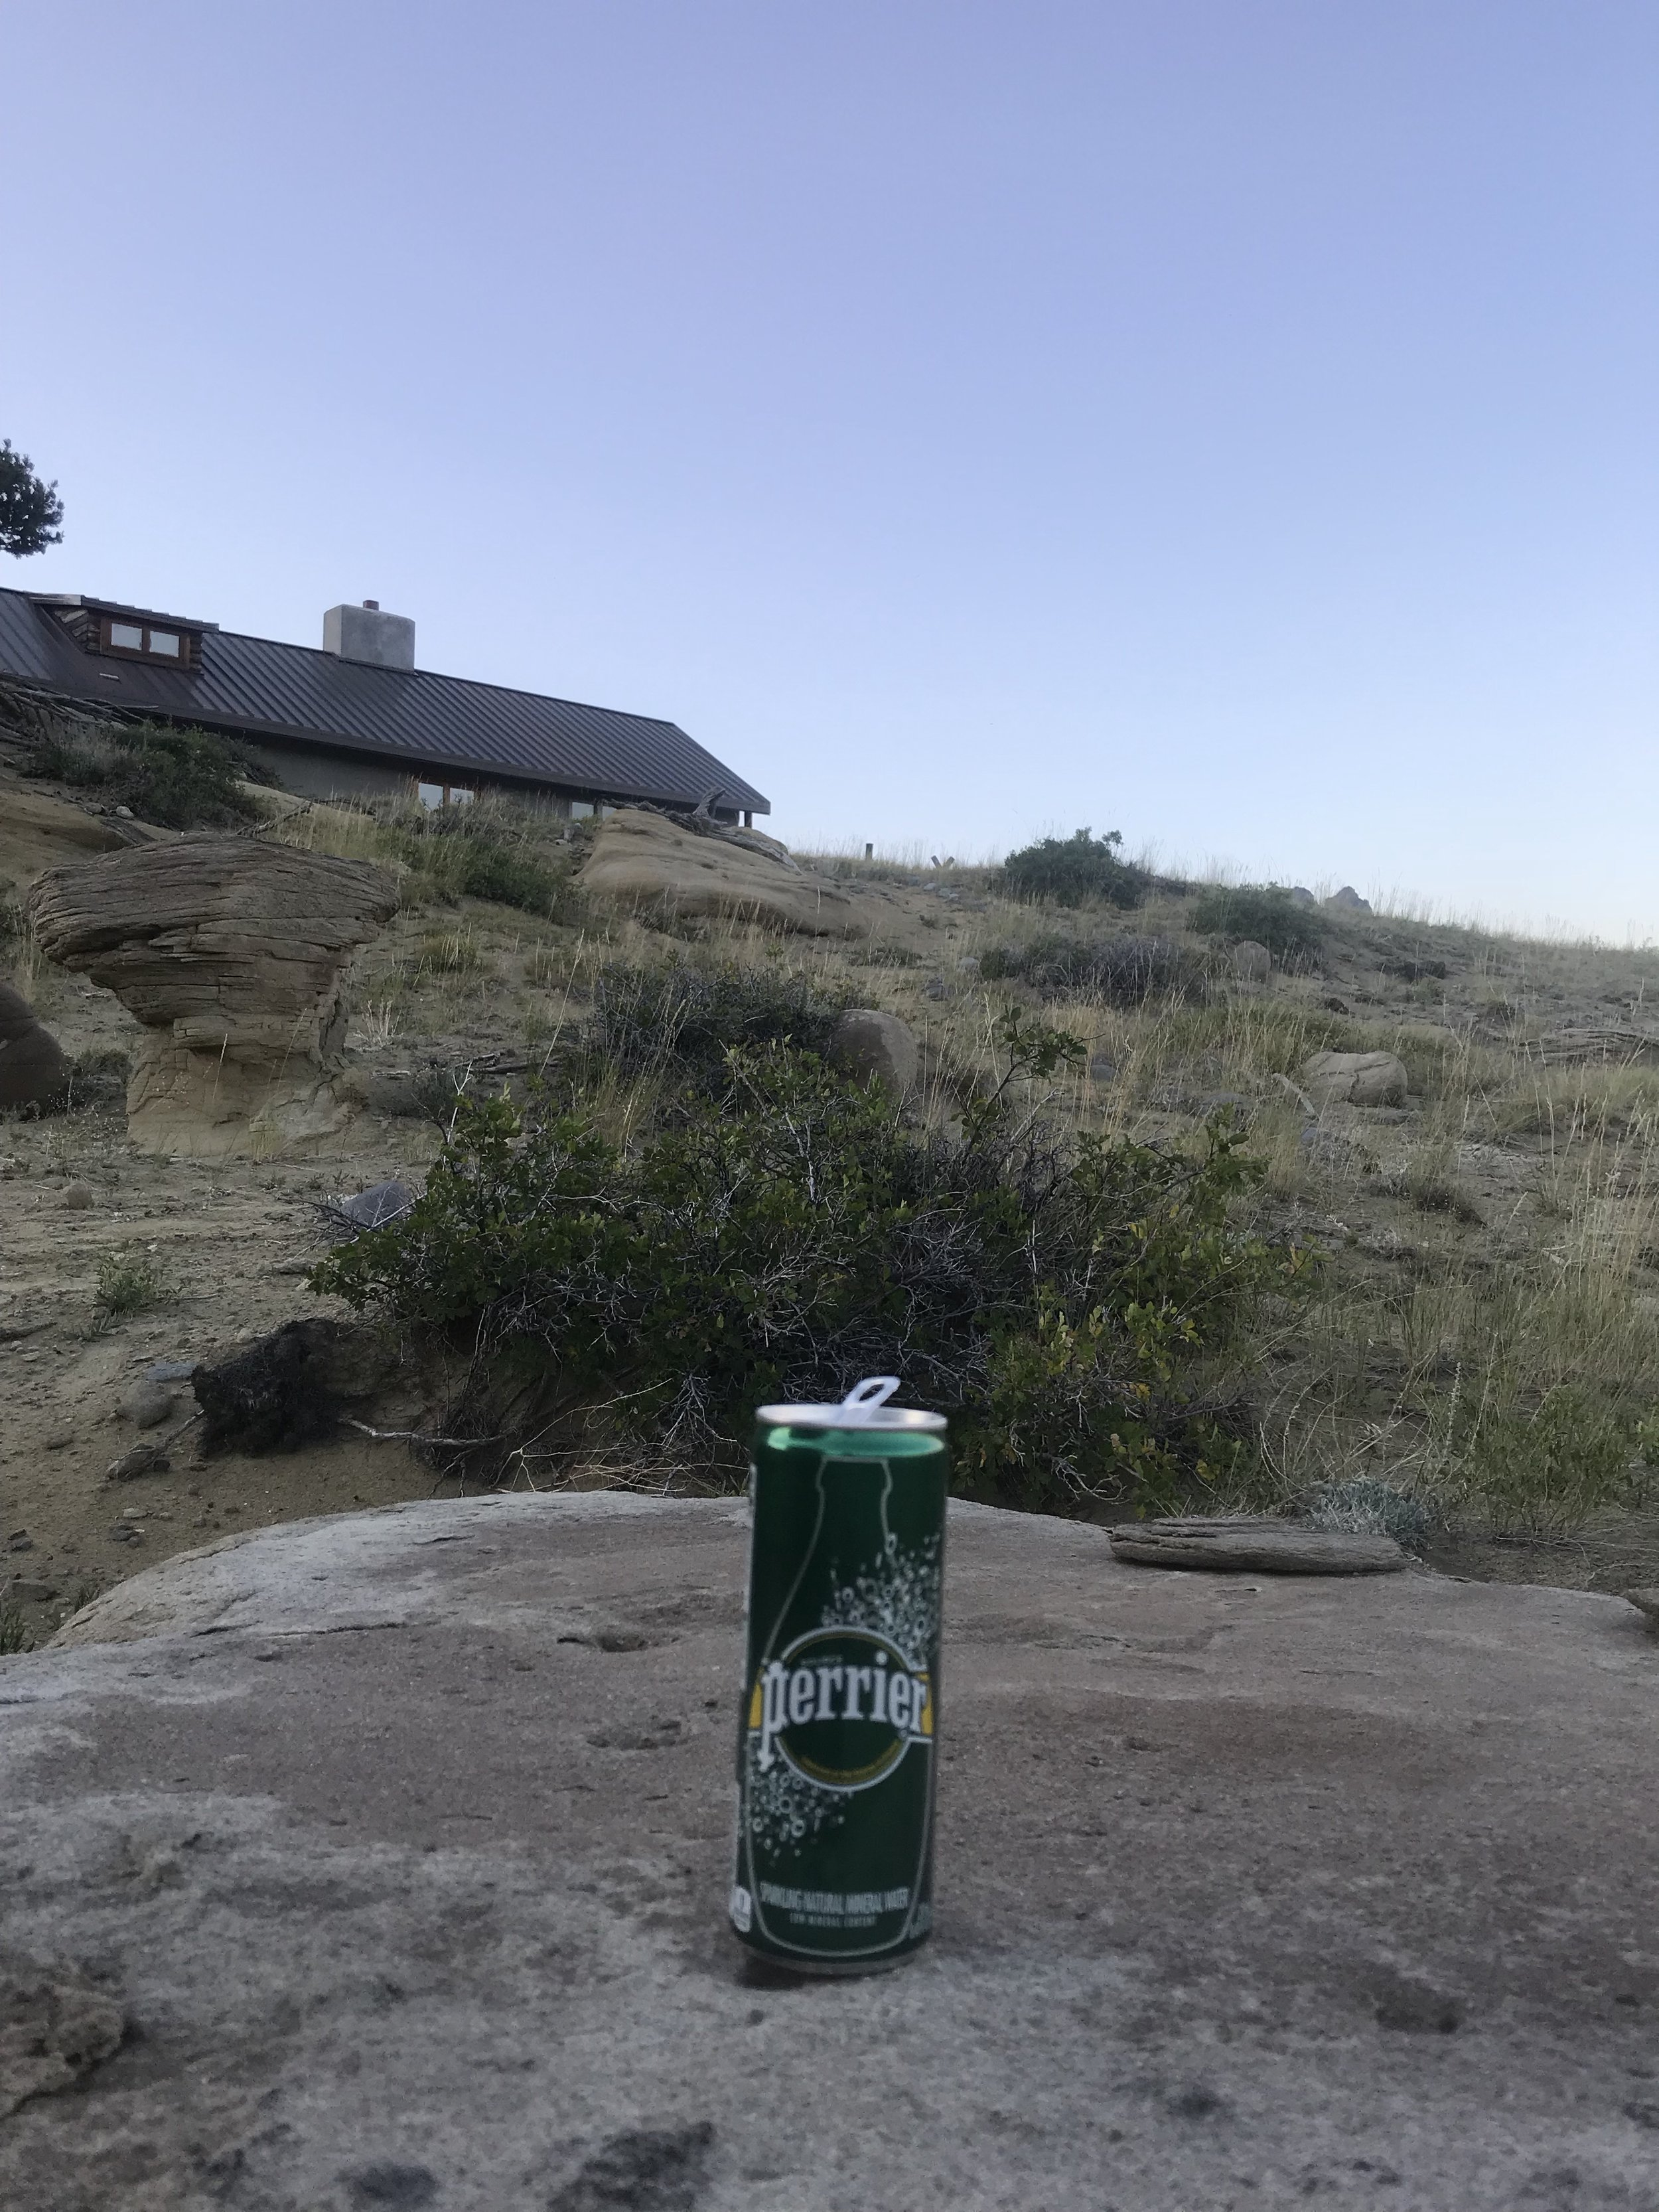 Perrier, now available in convenient 10 oz. cans, poses atop a stone on the Wyoming property of a former copywriter and creative director, Wapiti, Wyoming, 8:50 pm, July 19, 2018.